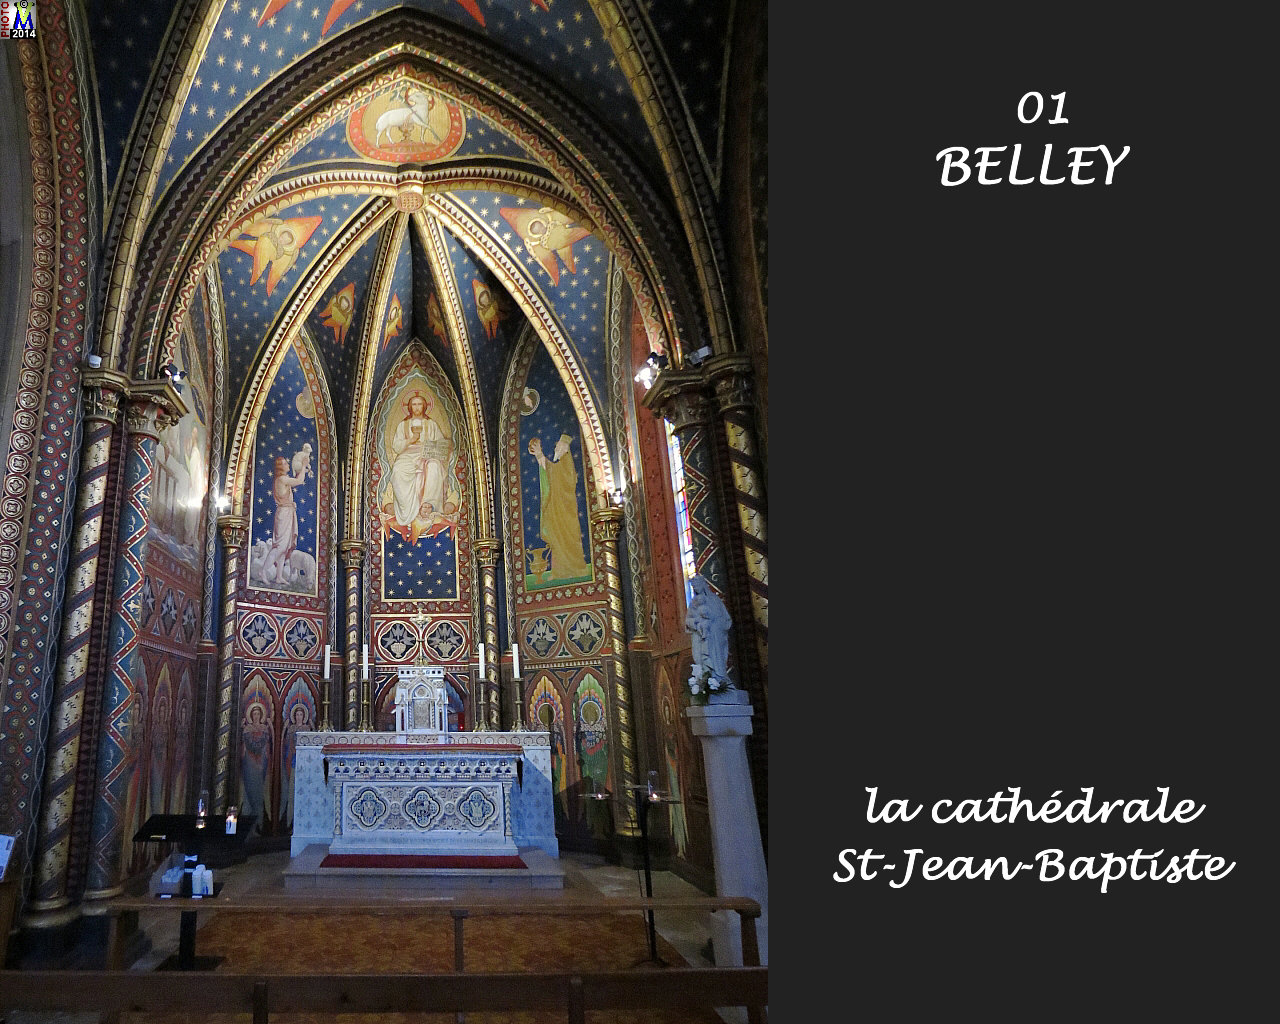 01BELLEY_cathedrale_230.jpg